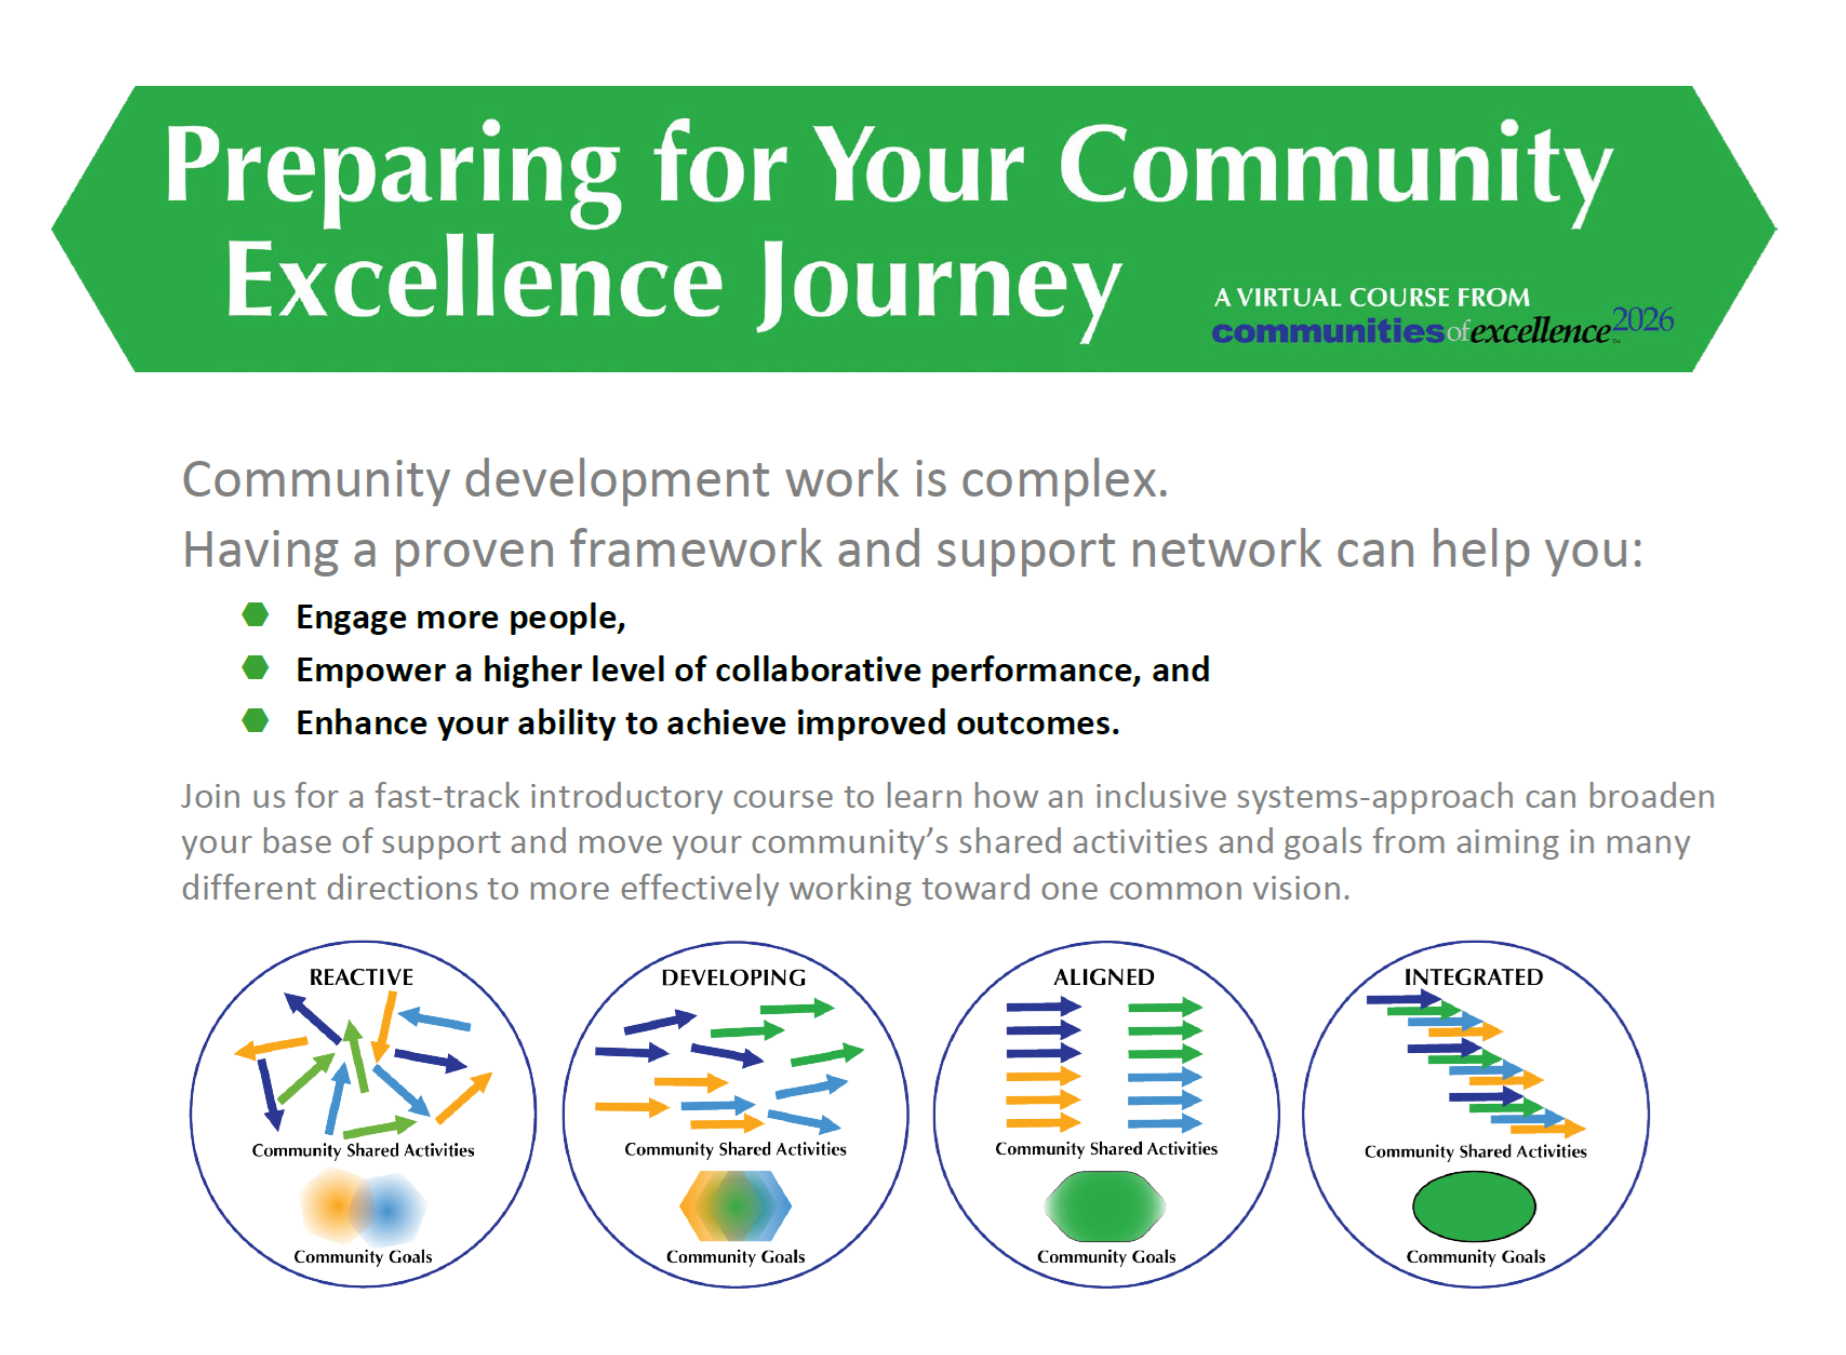 NEW SPRING COURSE - Preparing for your Communities of Excellence Journey